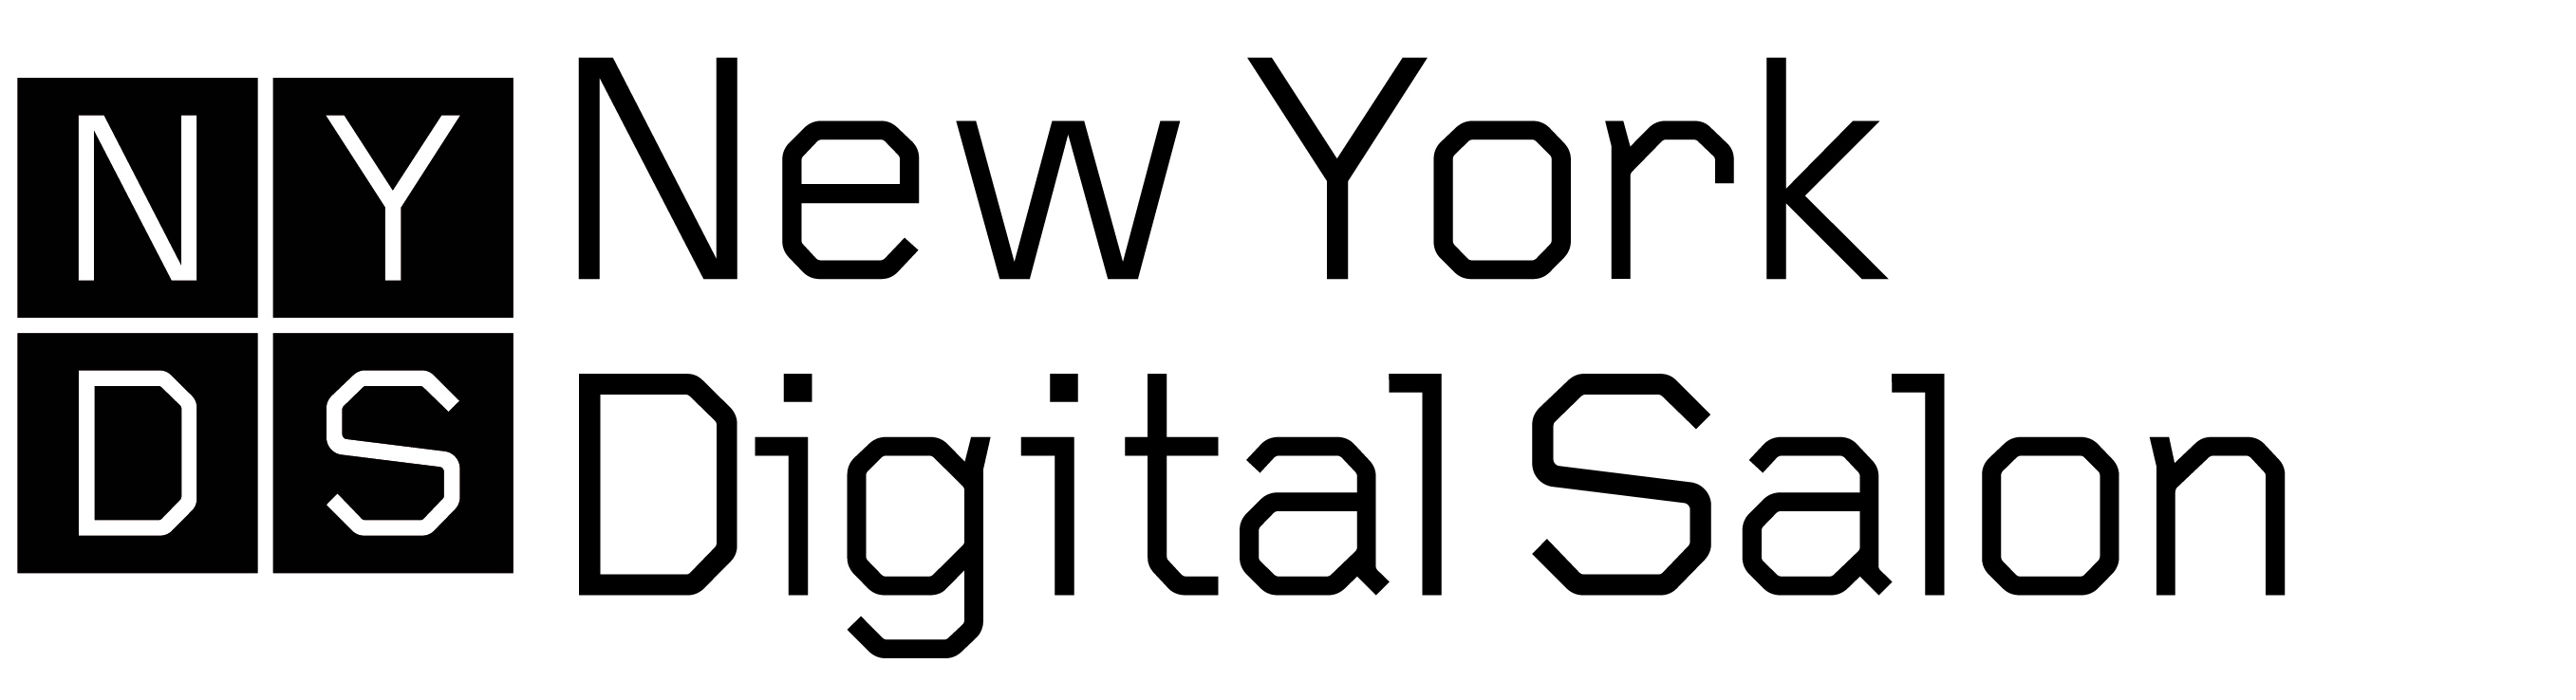 New York Digital Salon